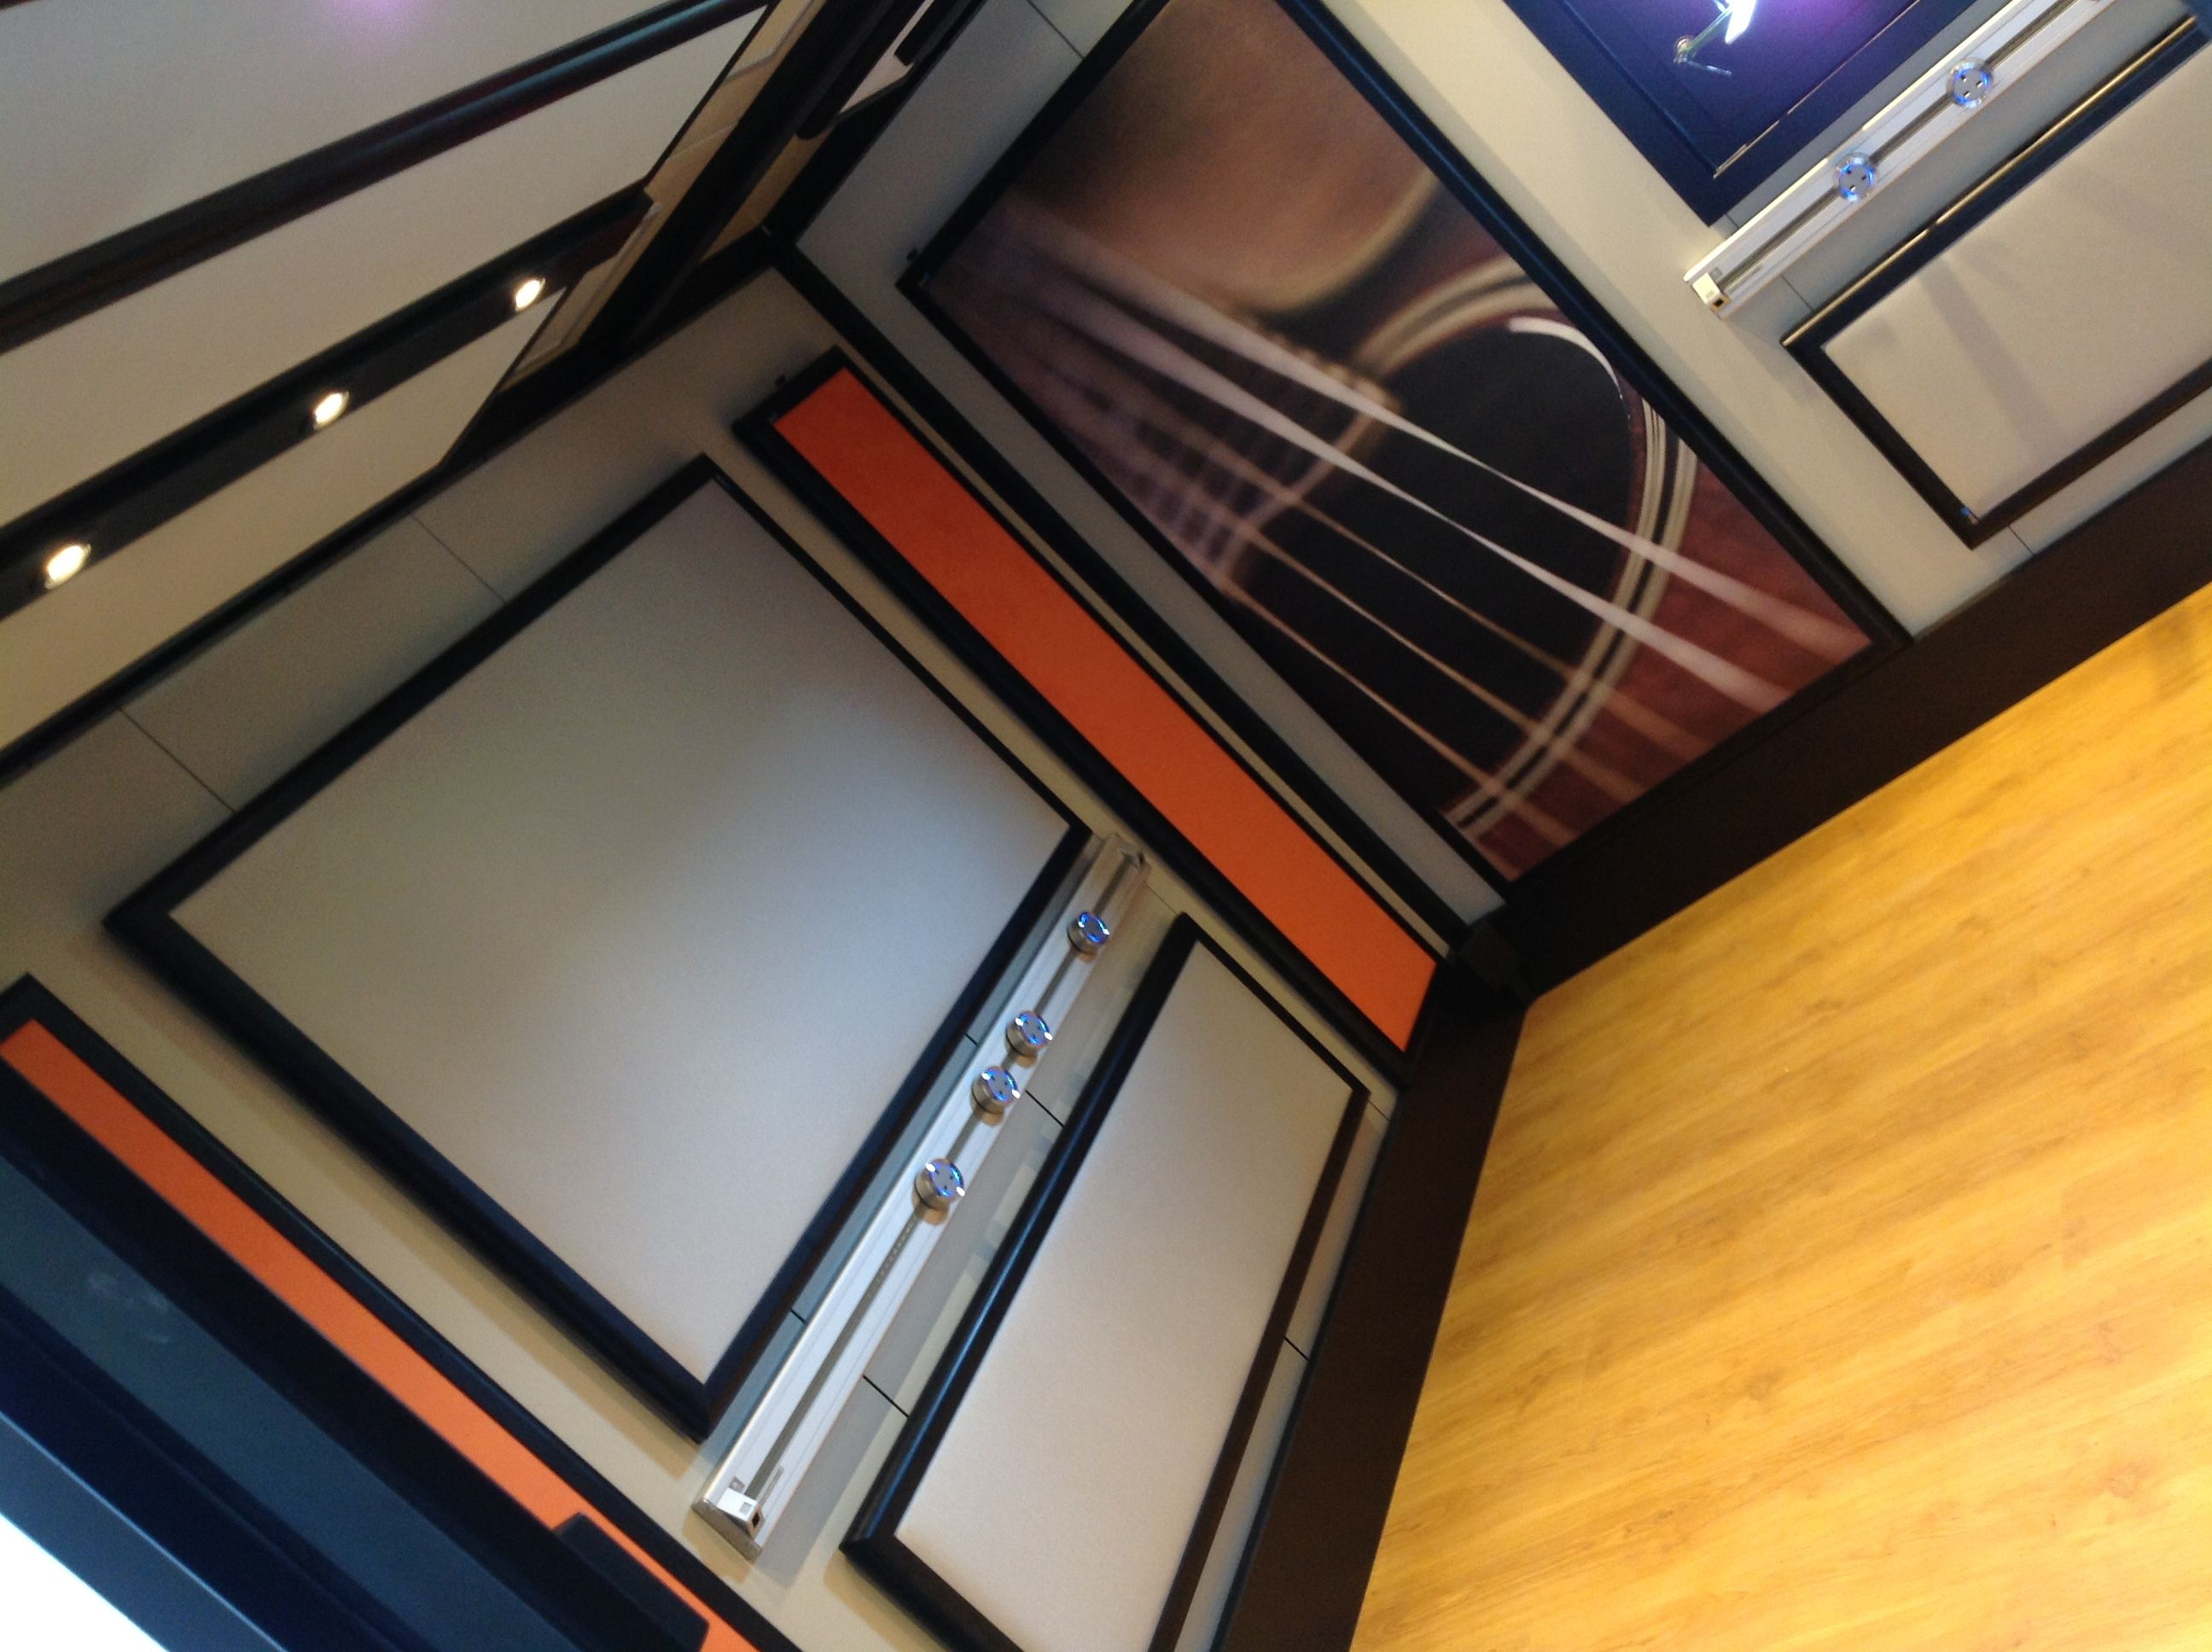 Warwick School Boxy Modular Music Rooms Musicrooms Schoolbuild Modulardesign Boxyrooms Acoustic Solutions Music Room Sound Proofing